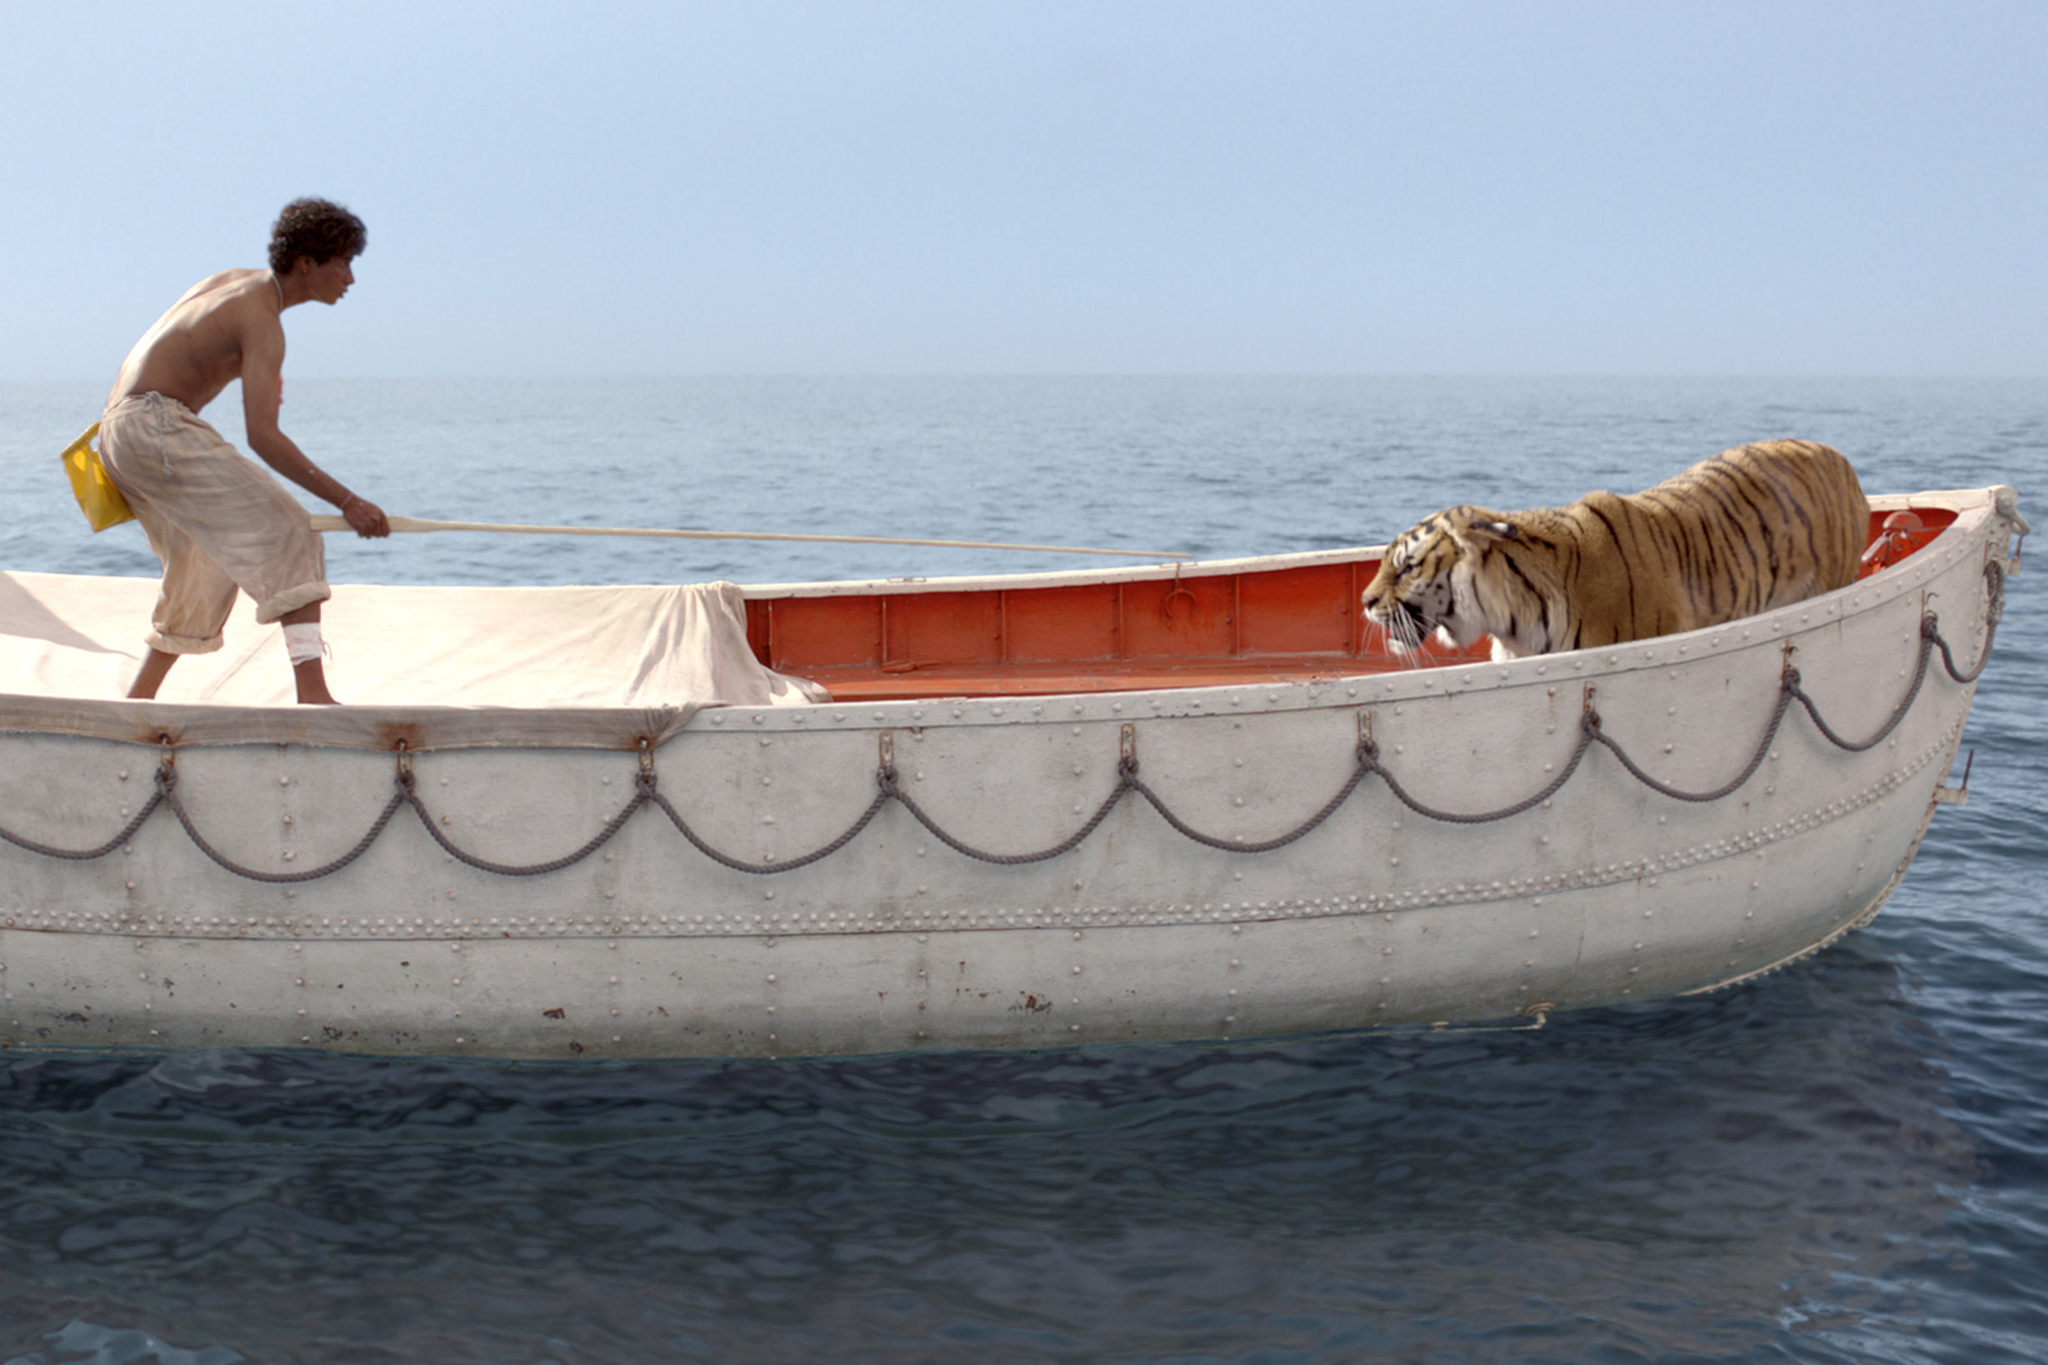 Life Of Pi 2012 Directed By Ang Lee Film Review